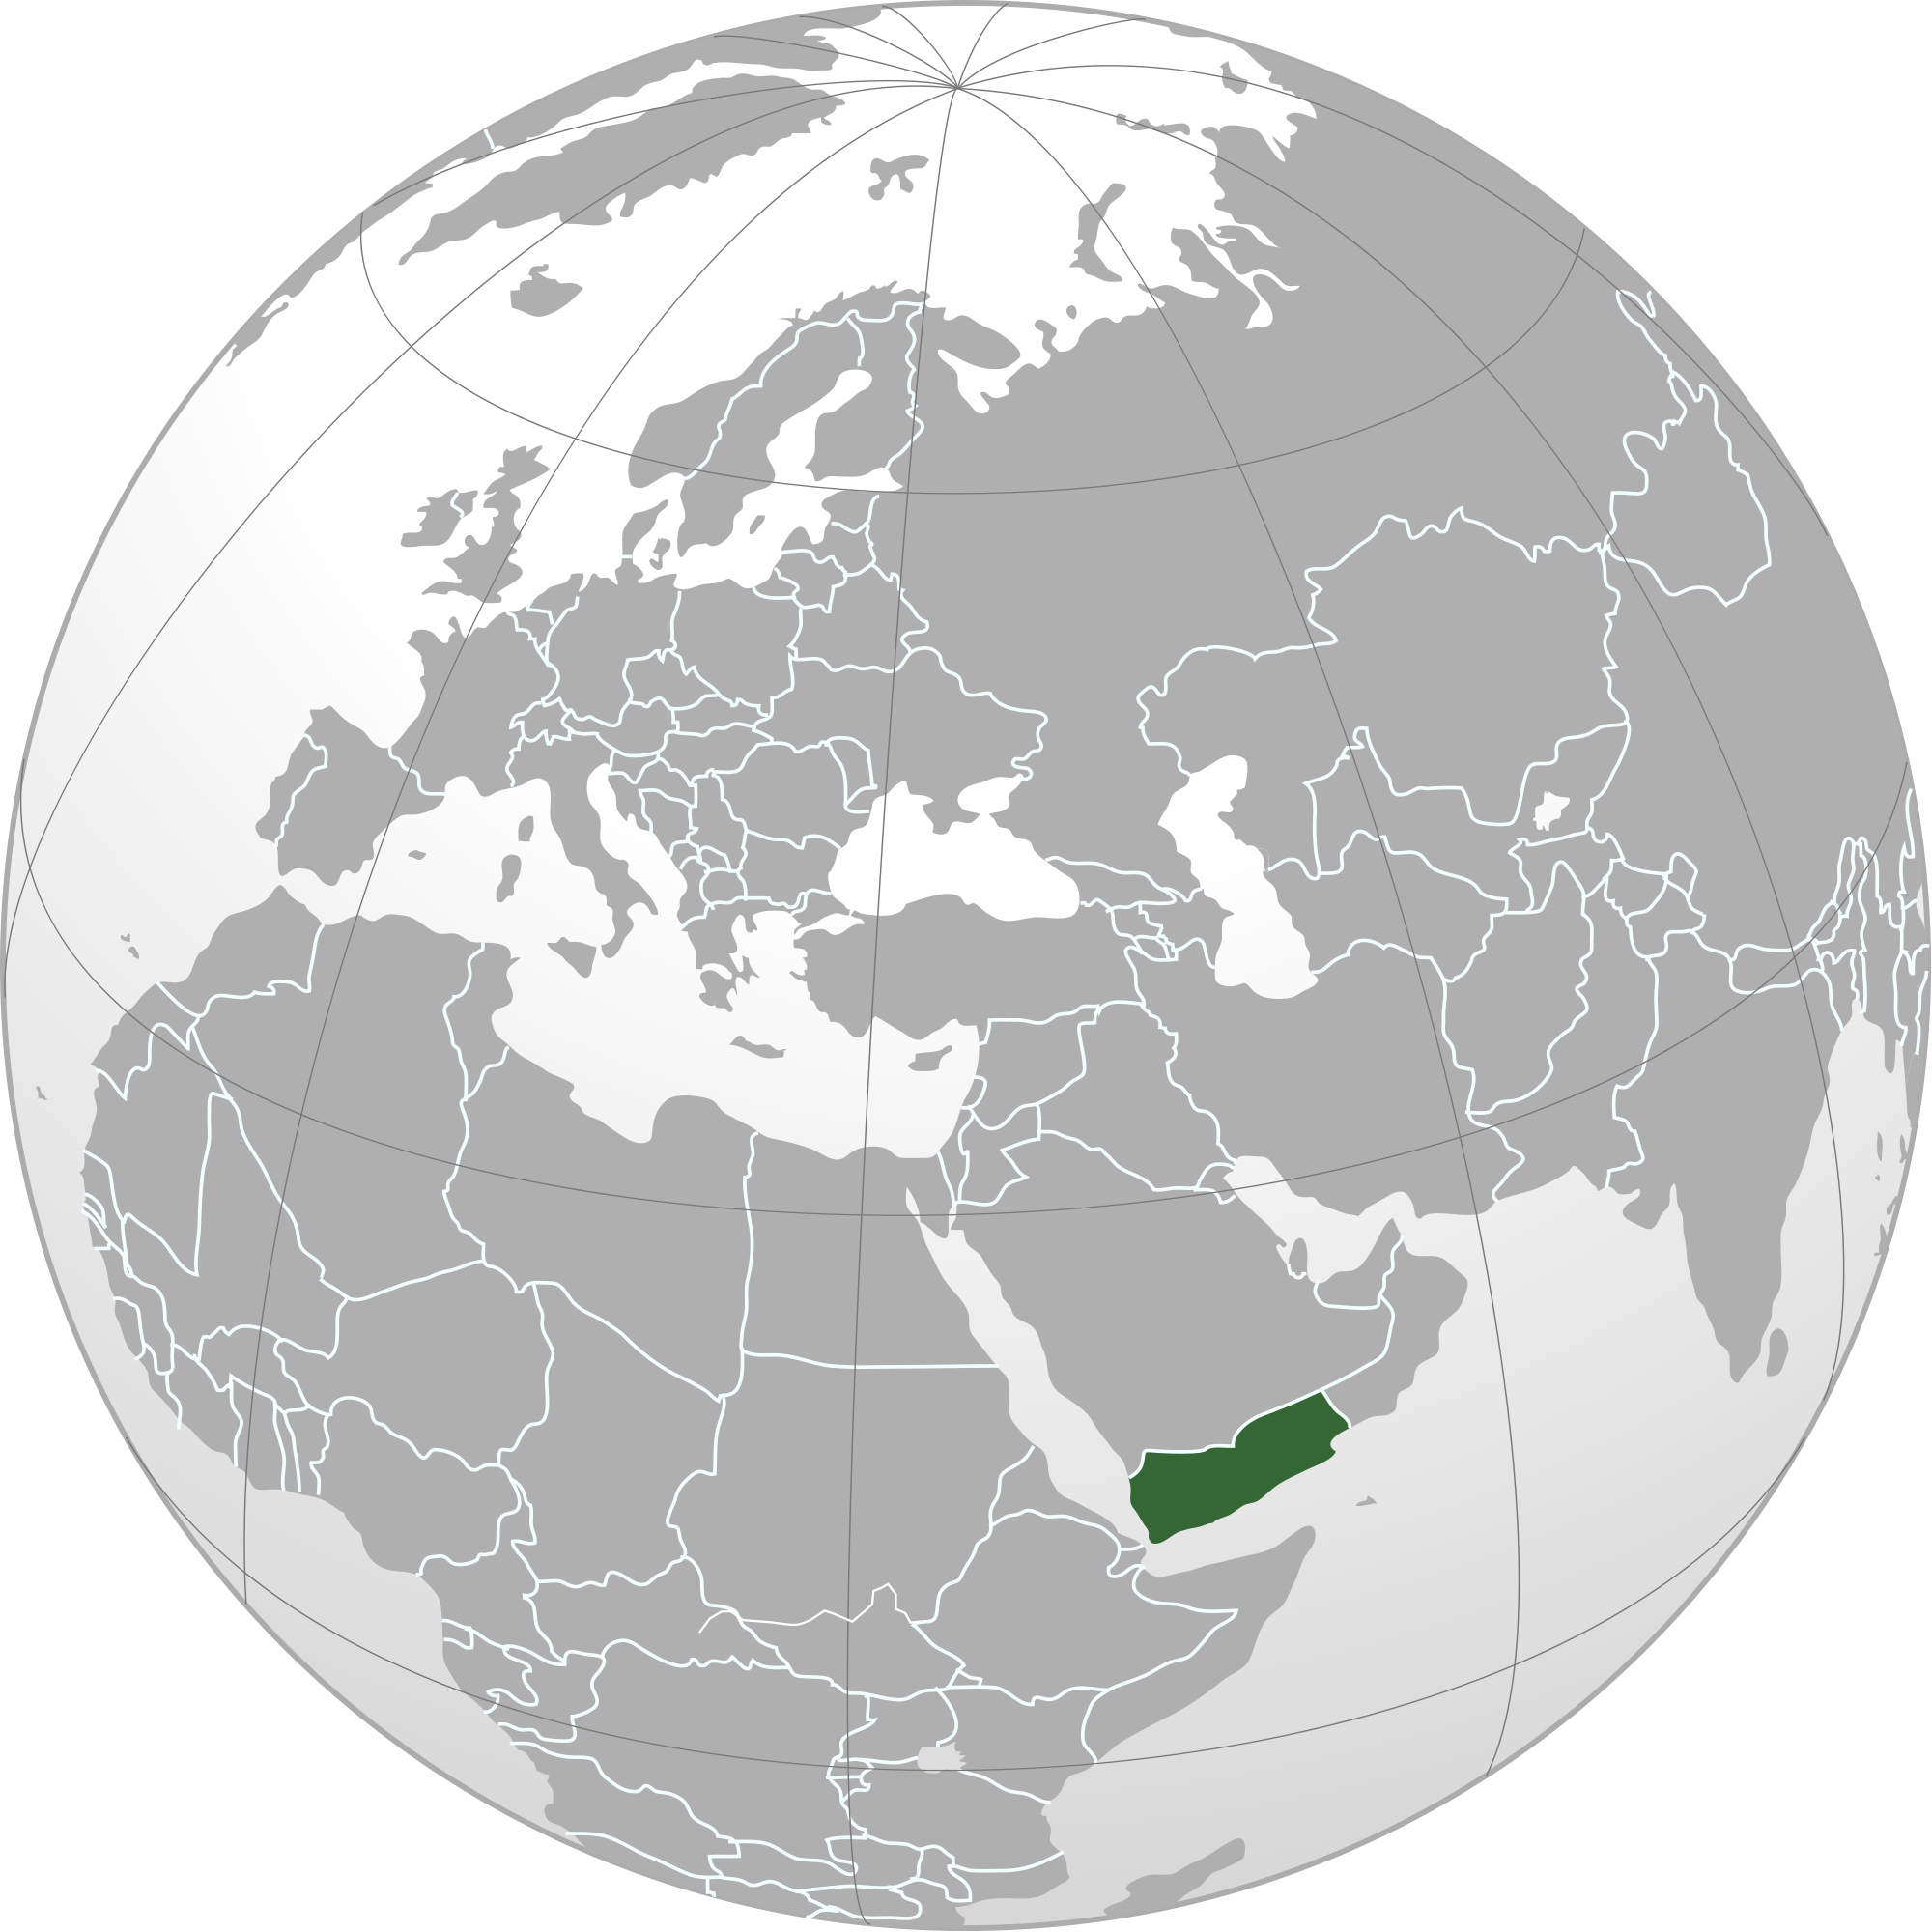 Location Of Yemen On World Map.Location Of The Yemen In The World Map